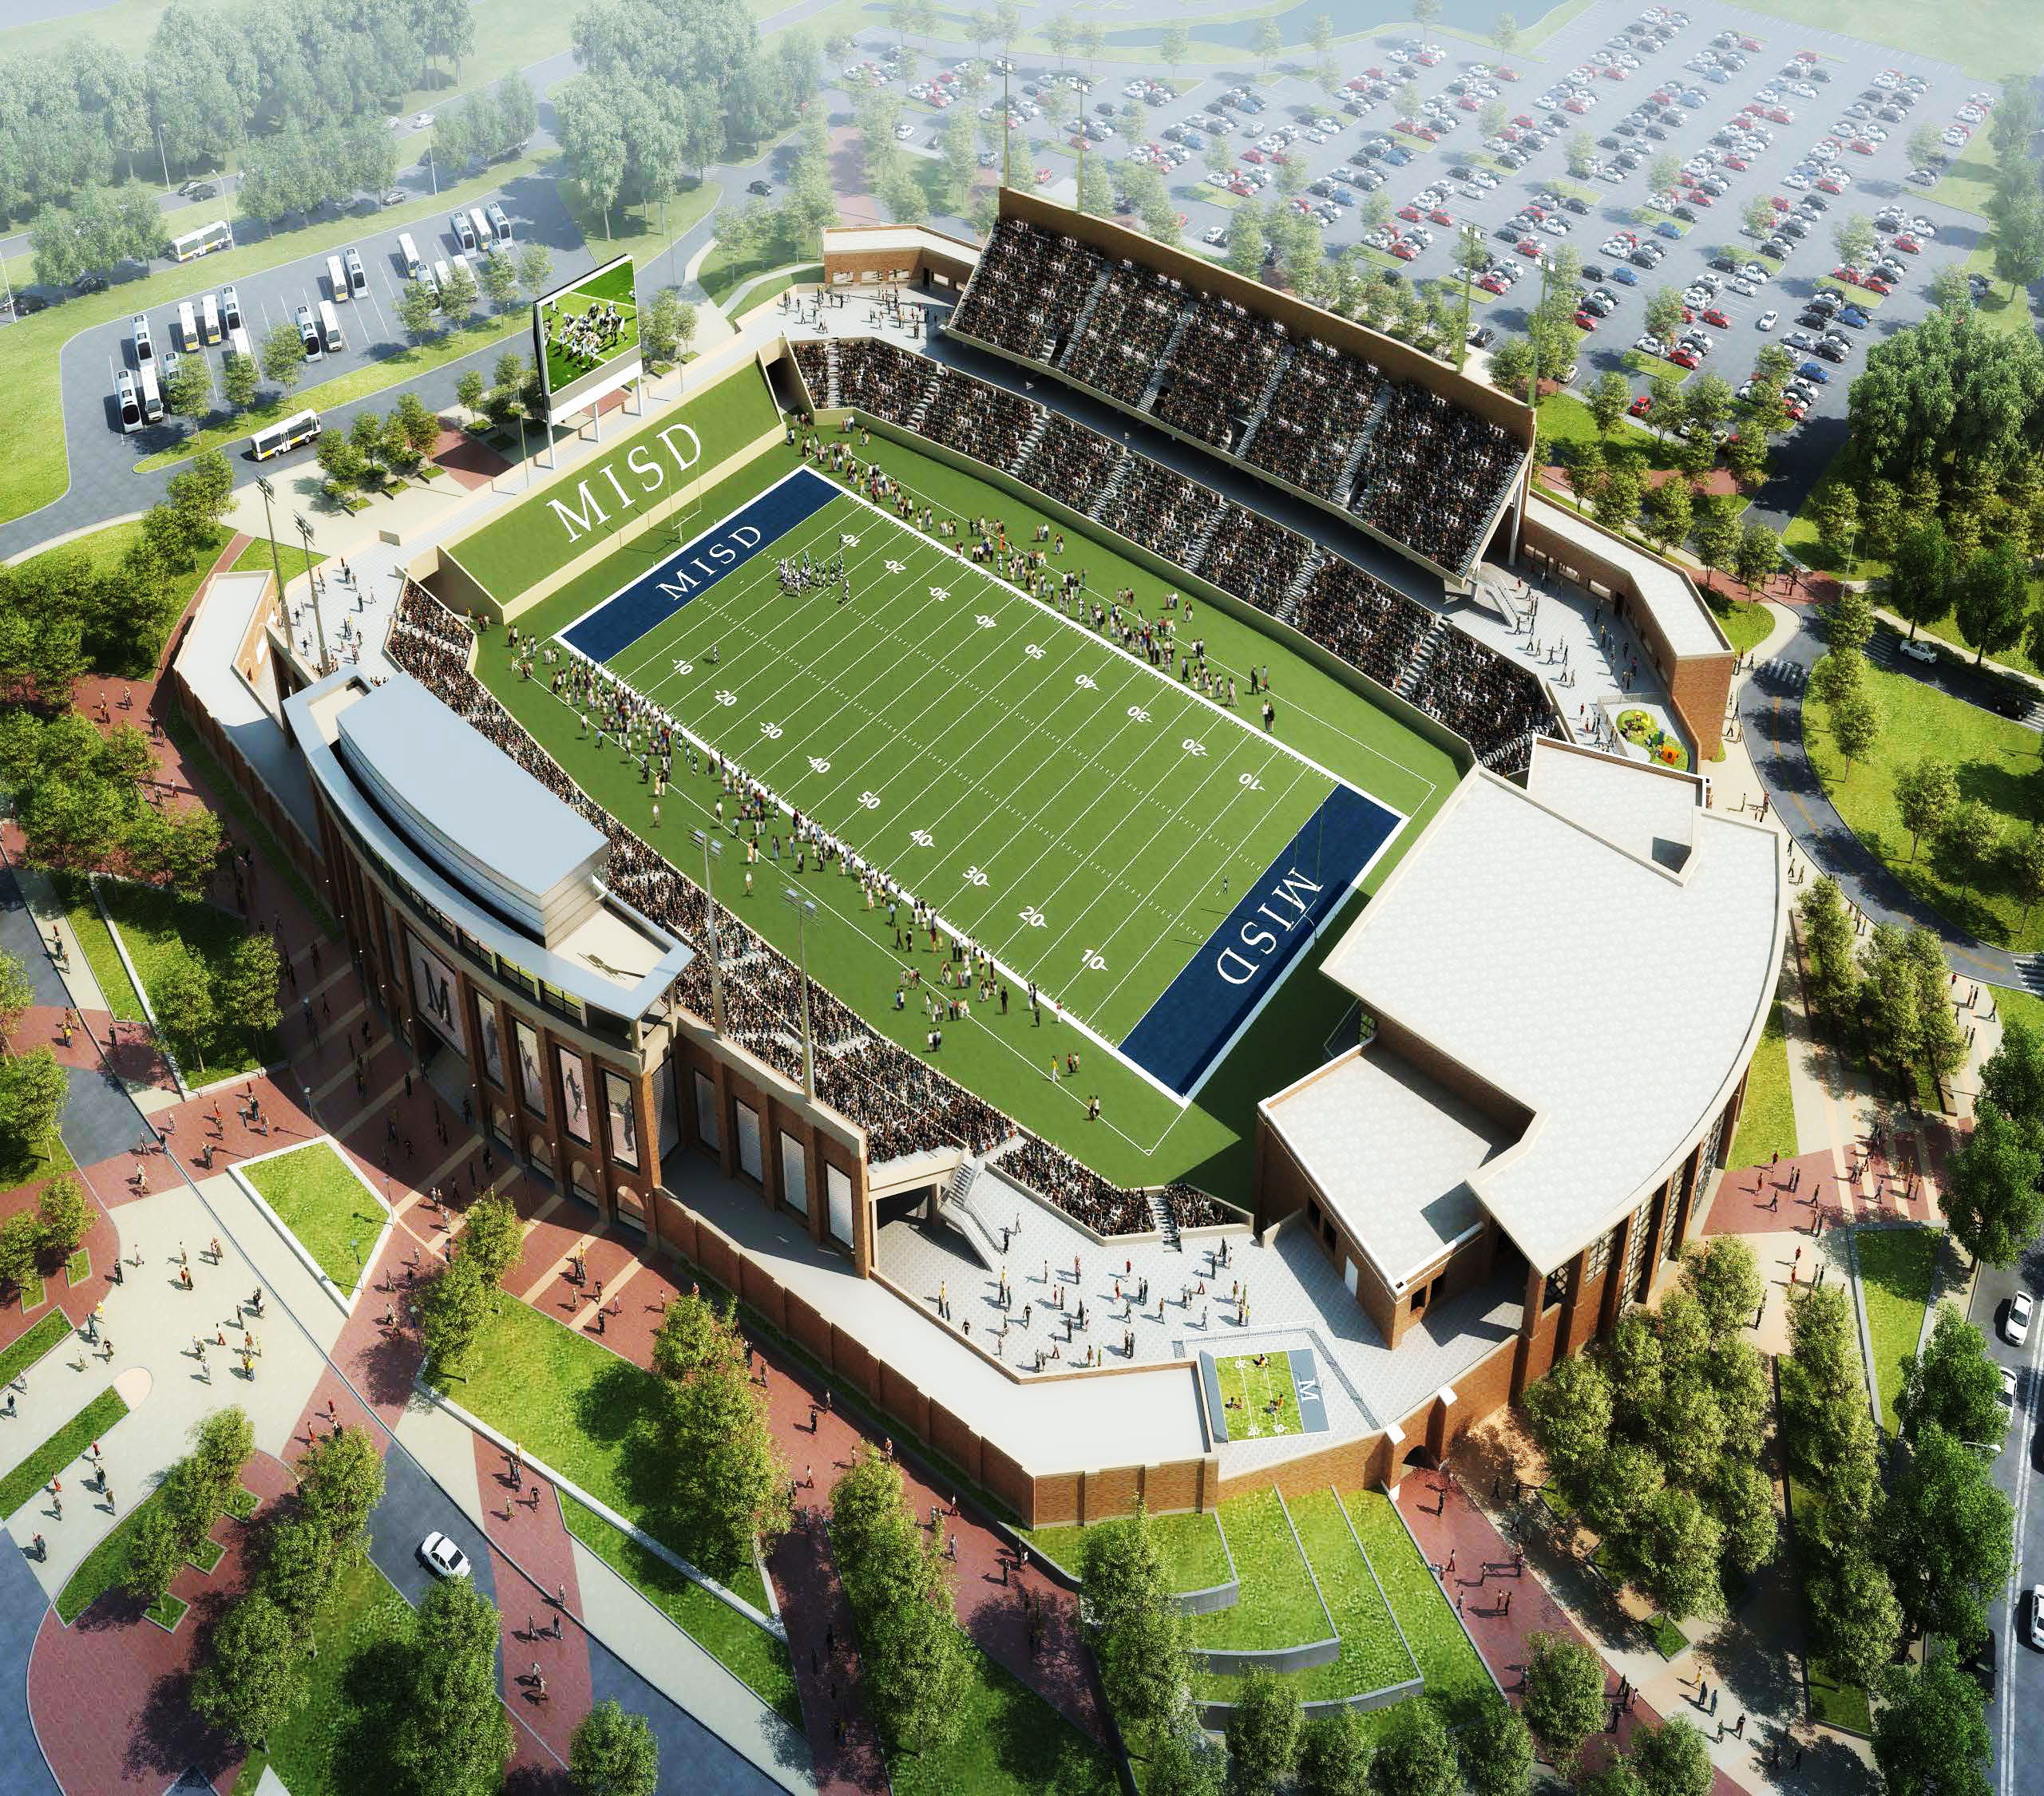 AN ARTIST'S RENDERING depicts what McKinney ISDís new stadium could look like at the southeast corner of Hardin Boulevard and McKinney Ranch Parkway. Saturday night, McKinney voters decided in favor of a $220 million bond, which includes a new football stadium and events center. Construction of the 12,000-seat venue makes up $50.3 million of the bond with another $12.5 million for stadium infrastructure being used from the 2000 bond. Depending if you want to go by the $50.3 million base cost or combined cost of $62.8 million, the stadium would rank among the area's priciest.